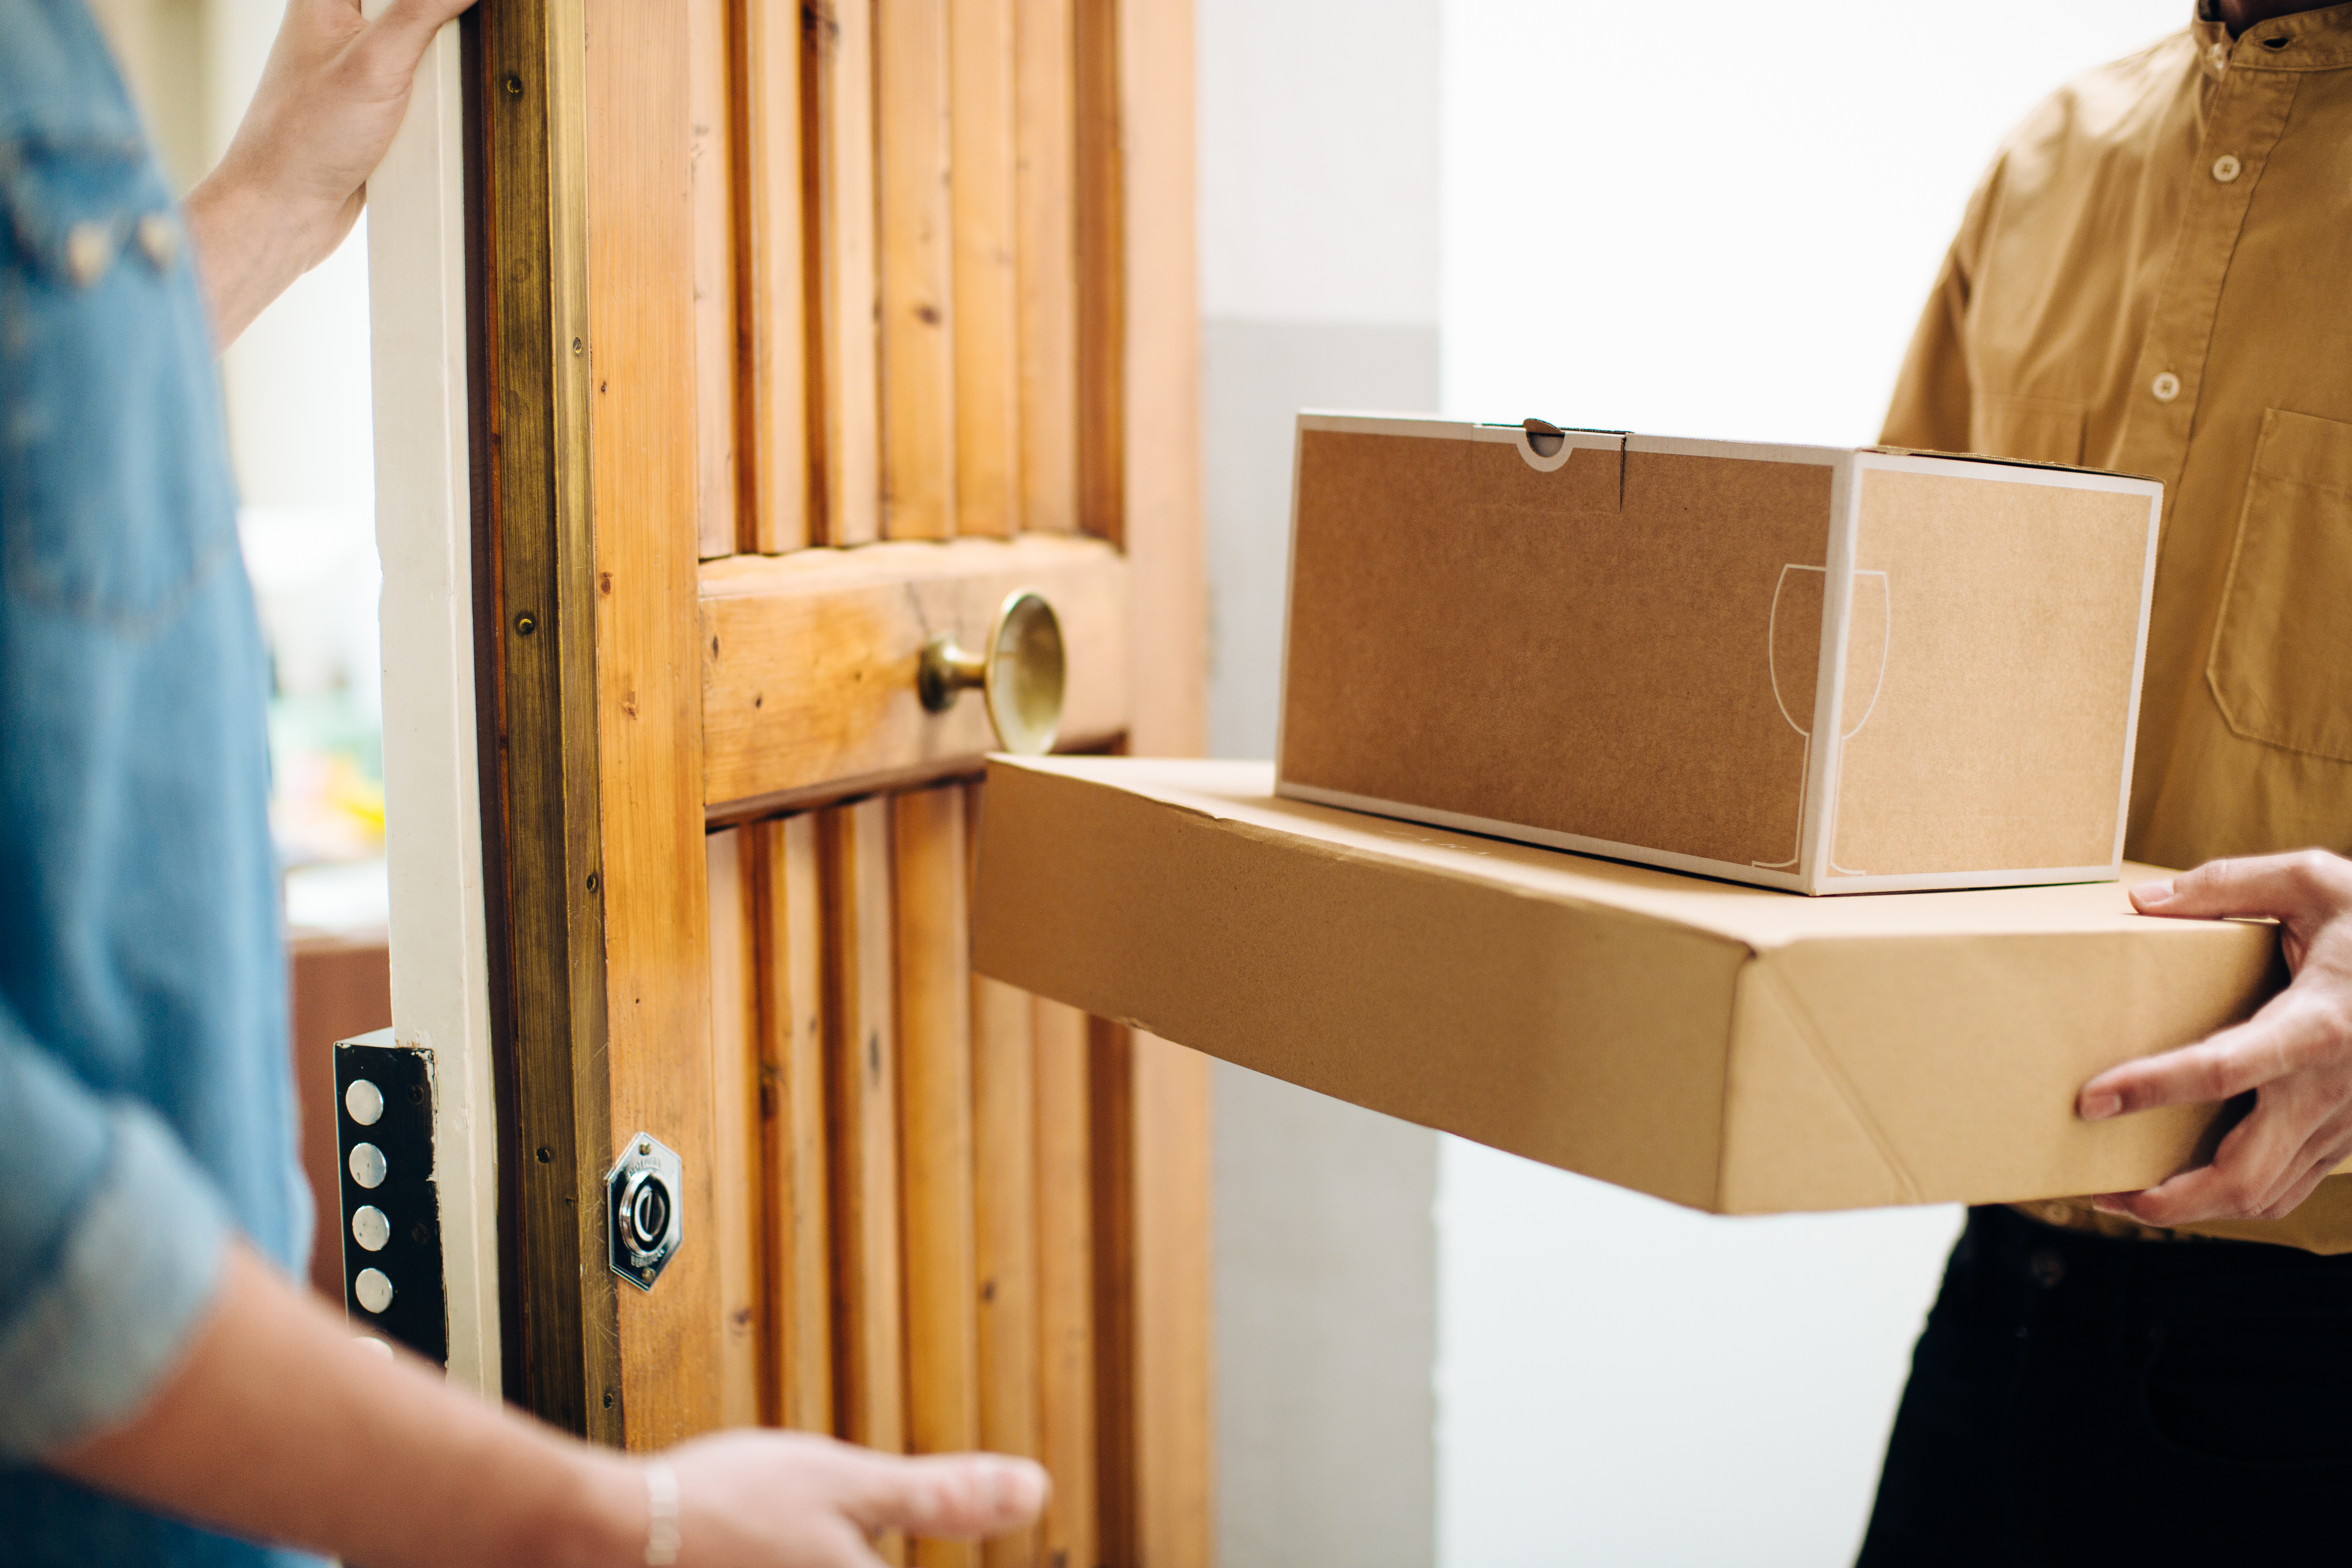 How to Change a UPS Shipping Address | Bizfluent